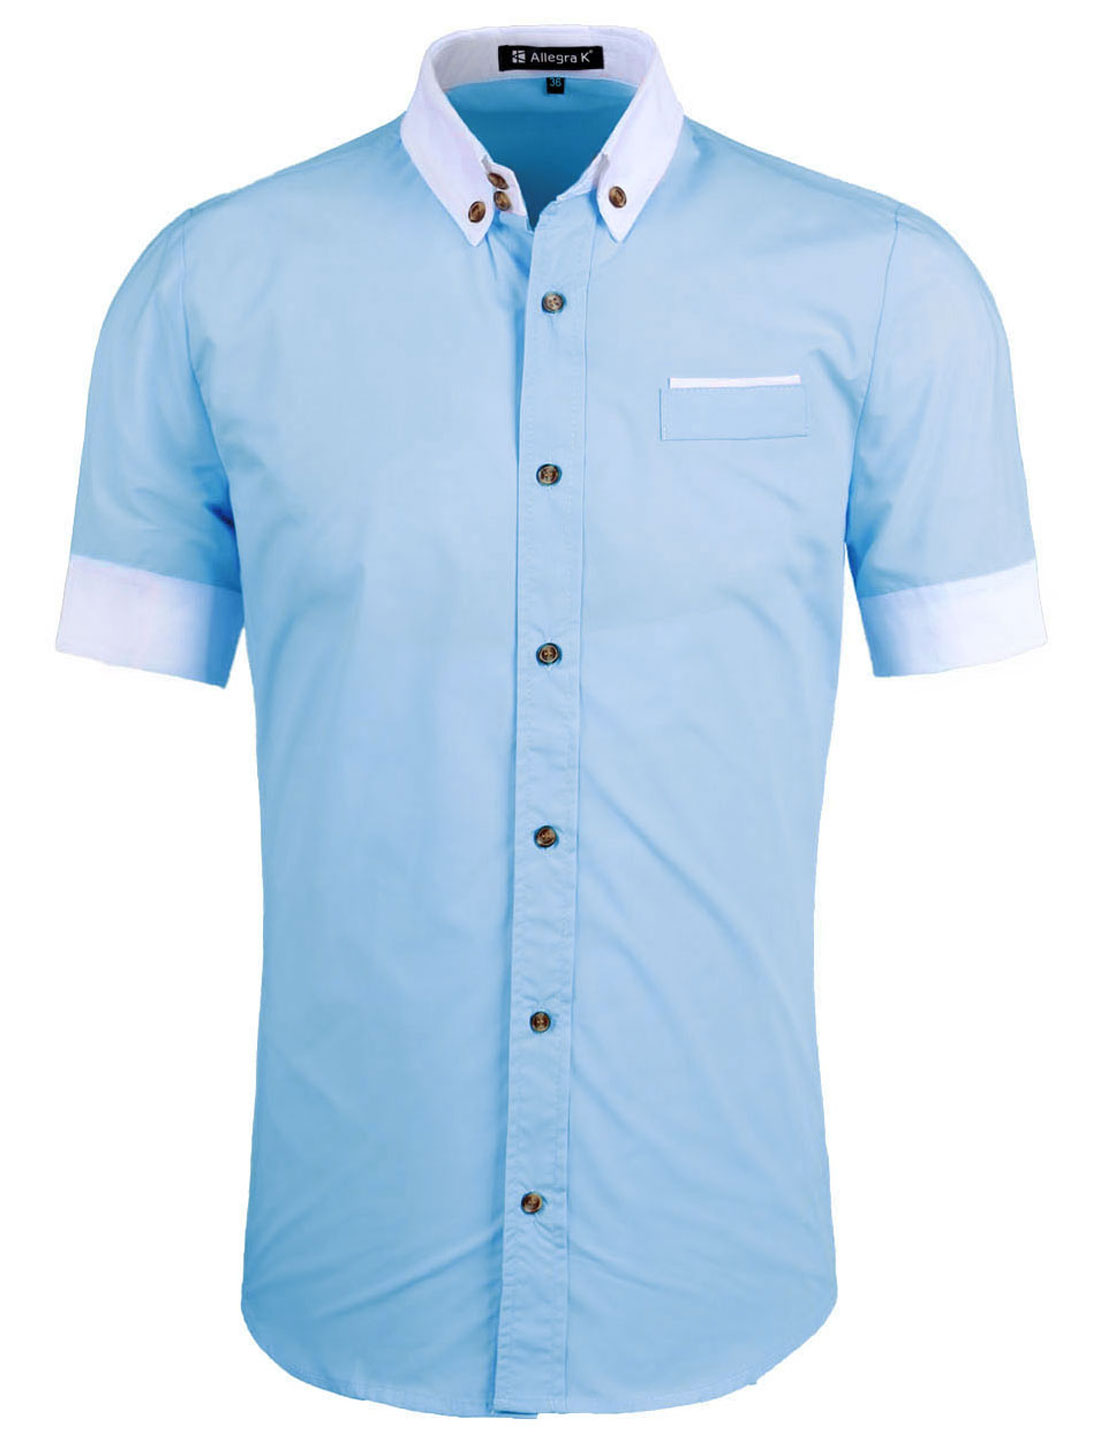 Men Contrast Color Short Sleeves Round Hem Shirt Light Blue L